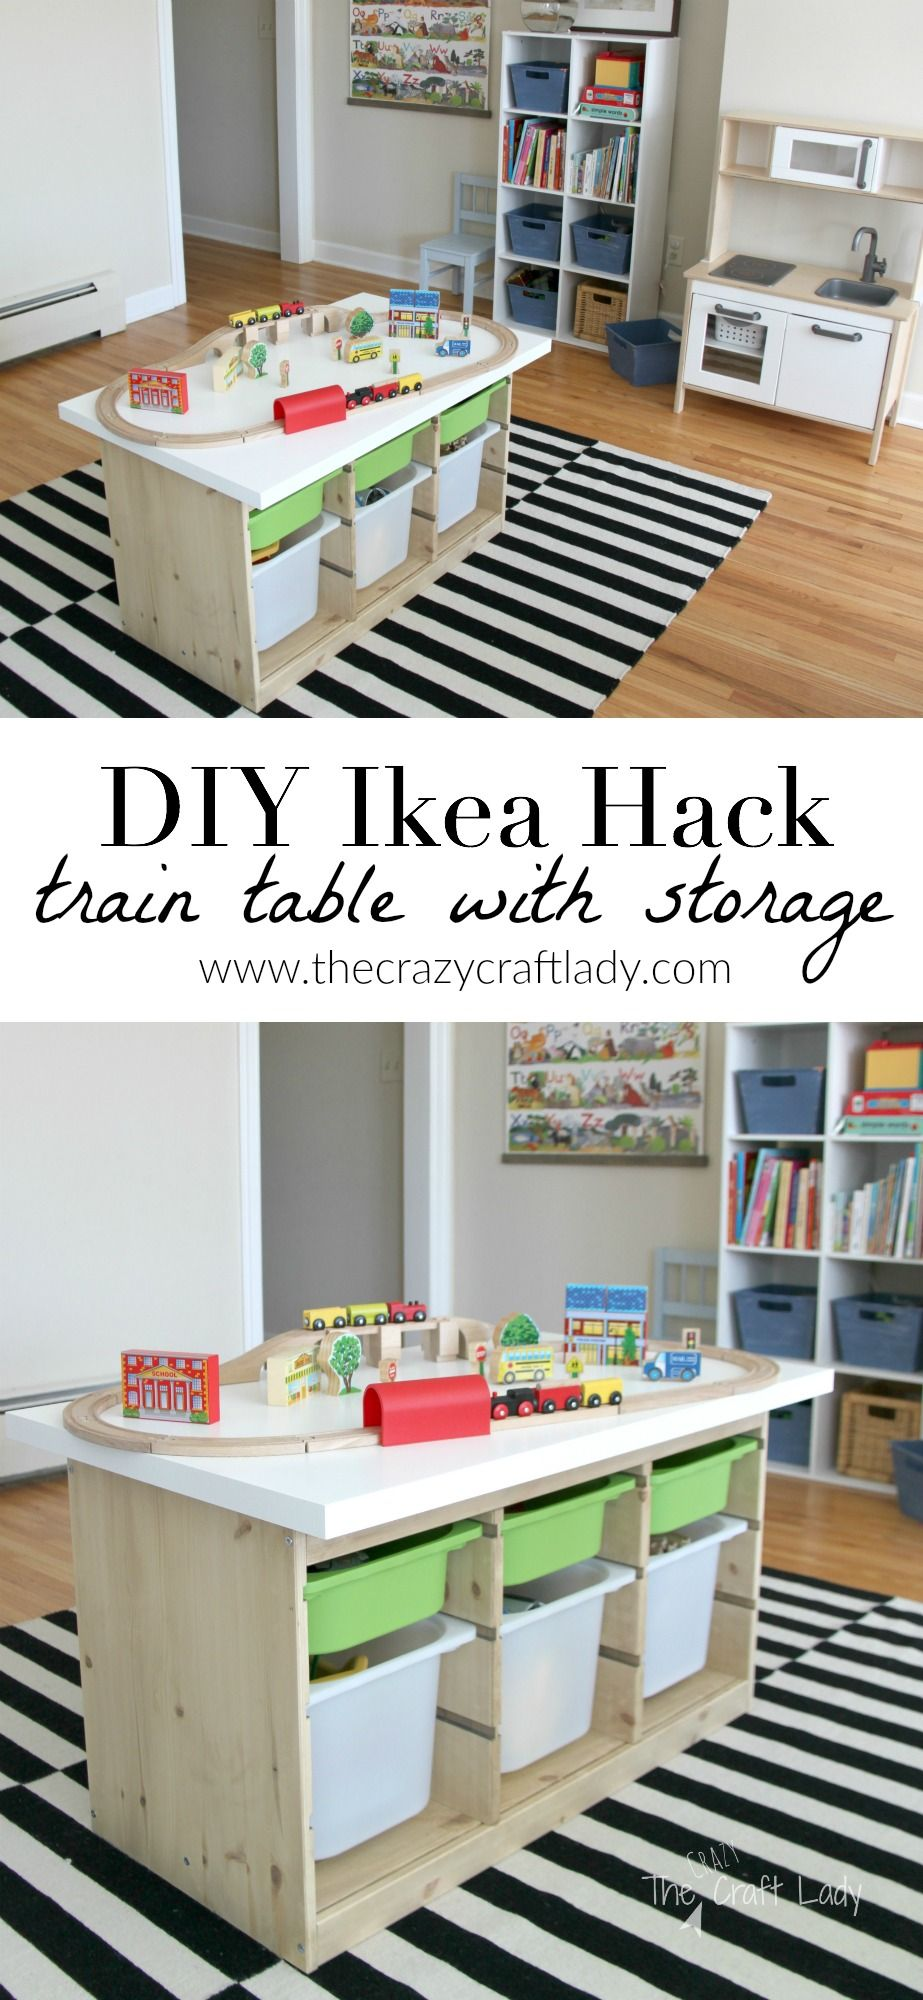 An Ikea Hack Train Activity Table Easy Diy Projects